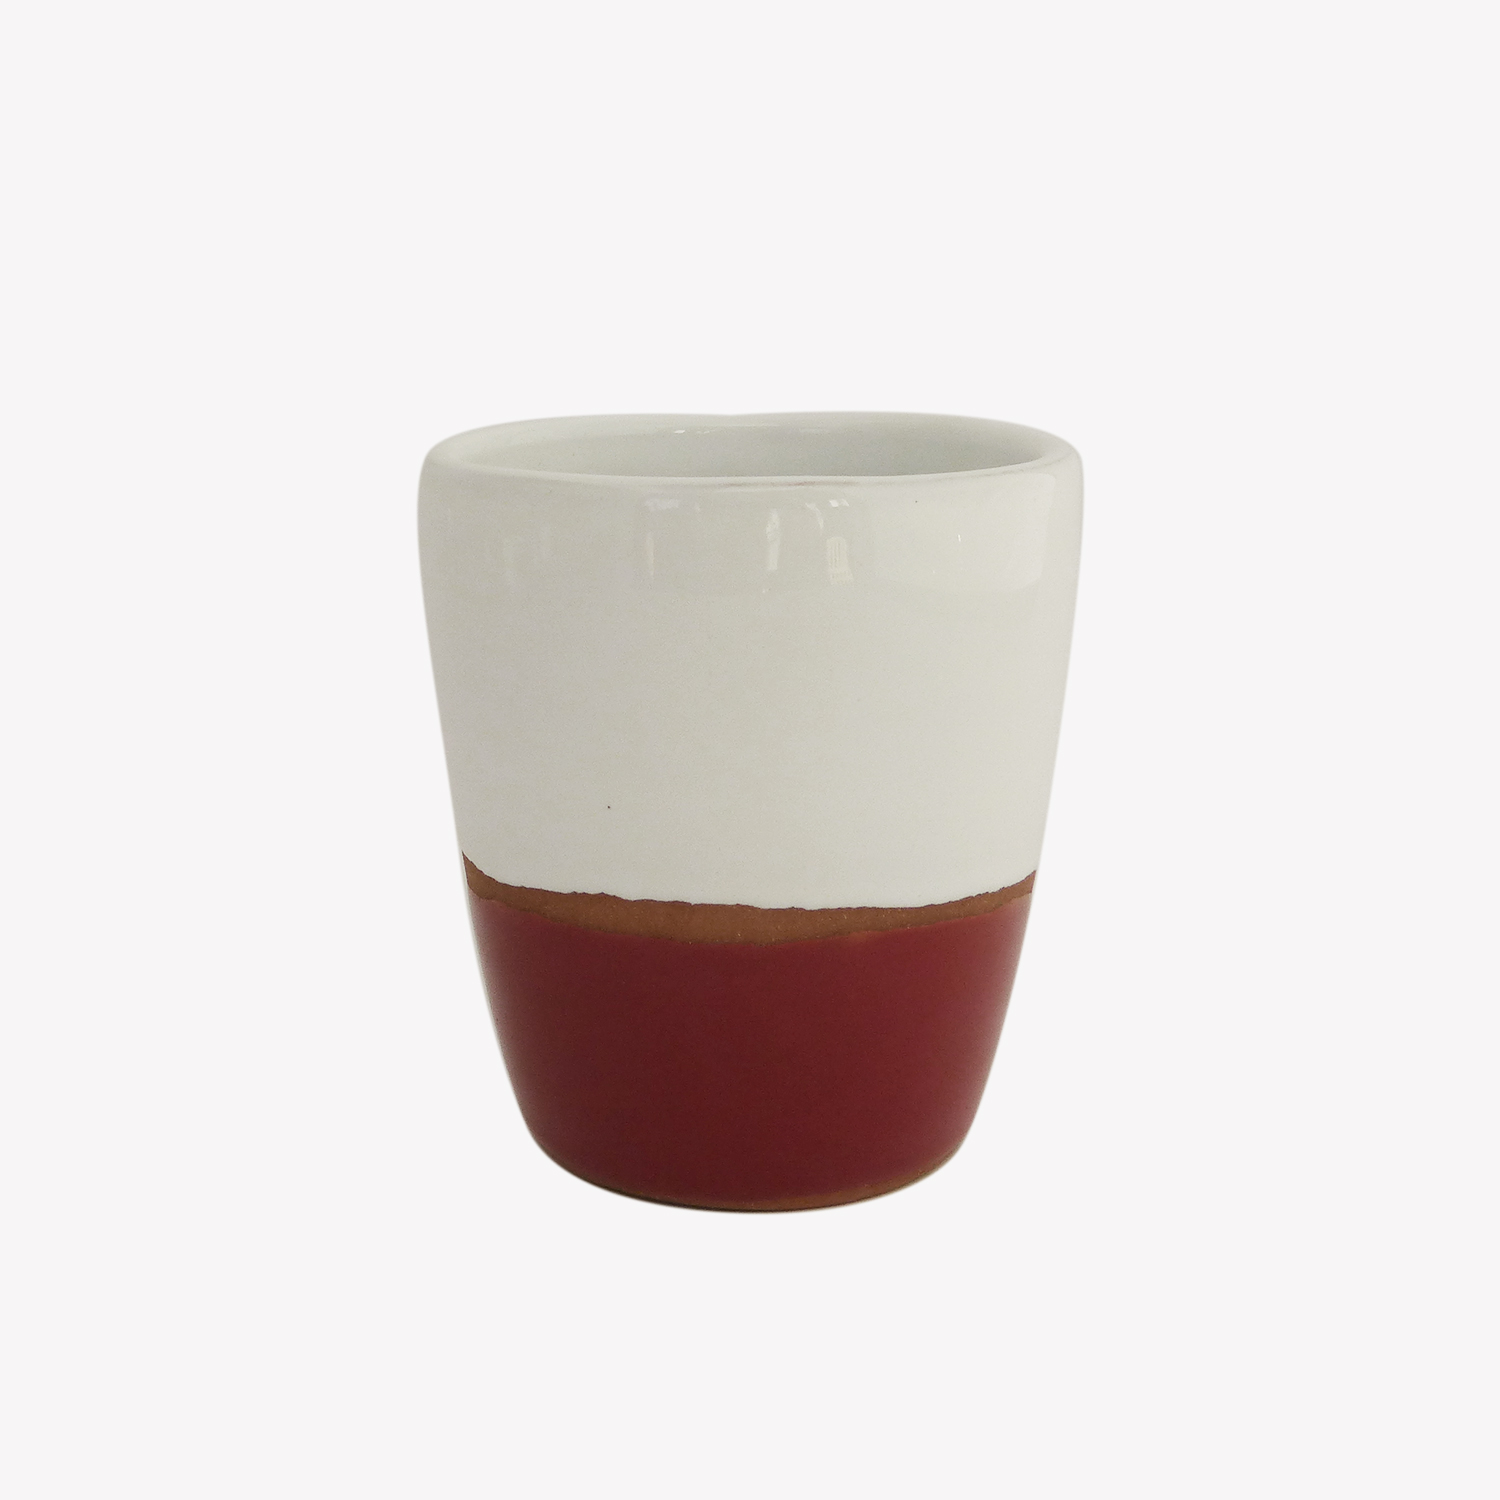 Tasse lungo terracotta couleur rouge - Atsonios Sifnos